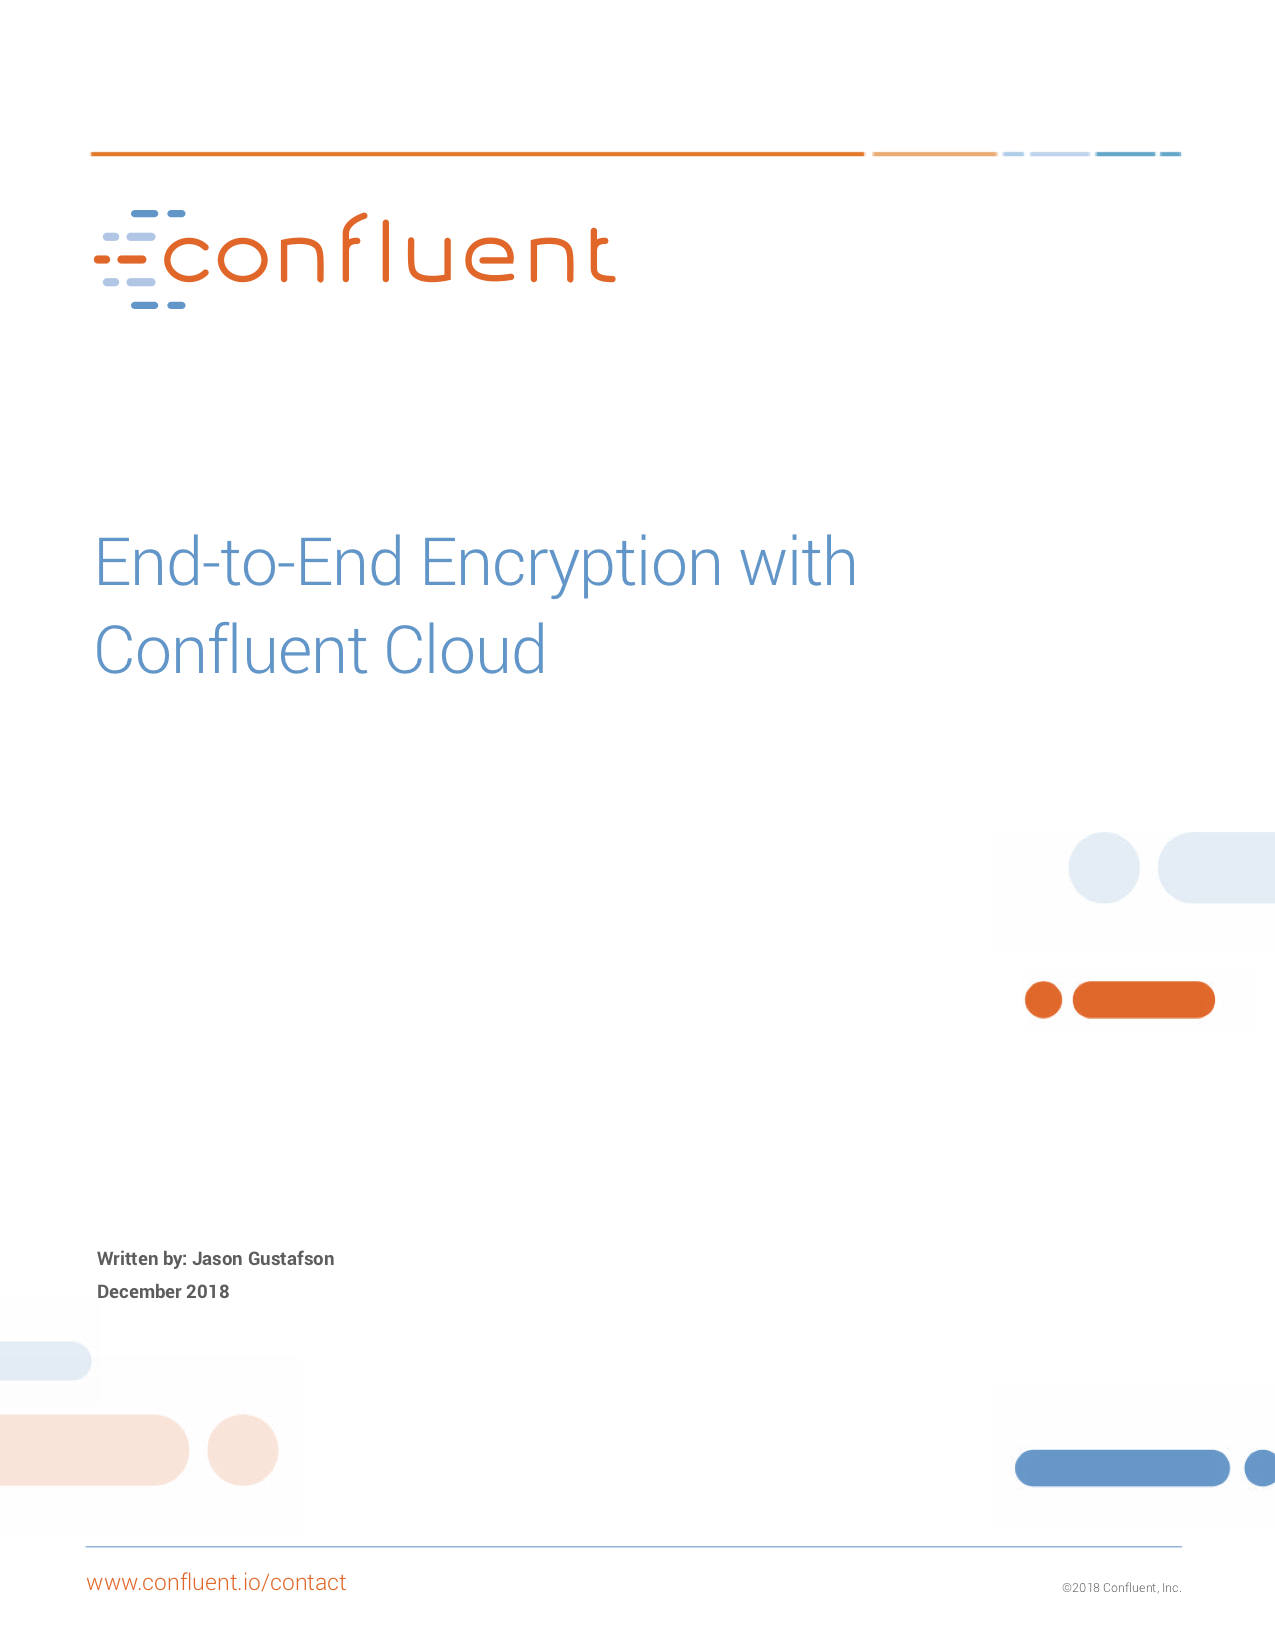 End-to-End Encryption with Confluent Cloud